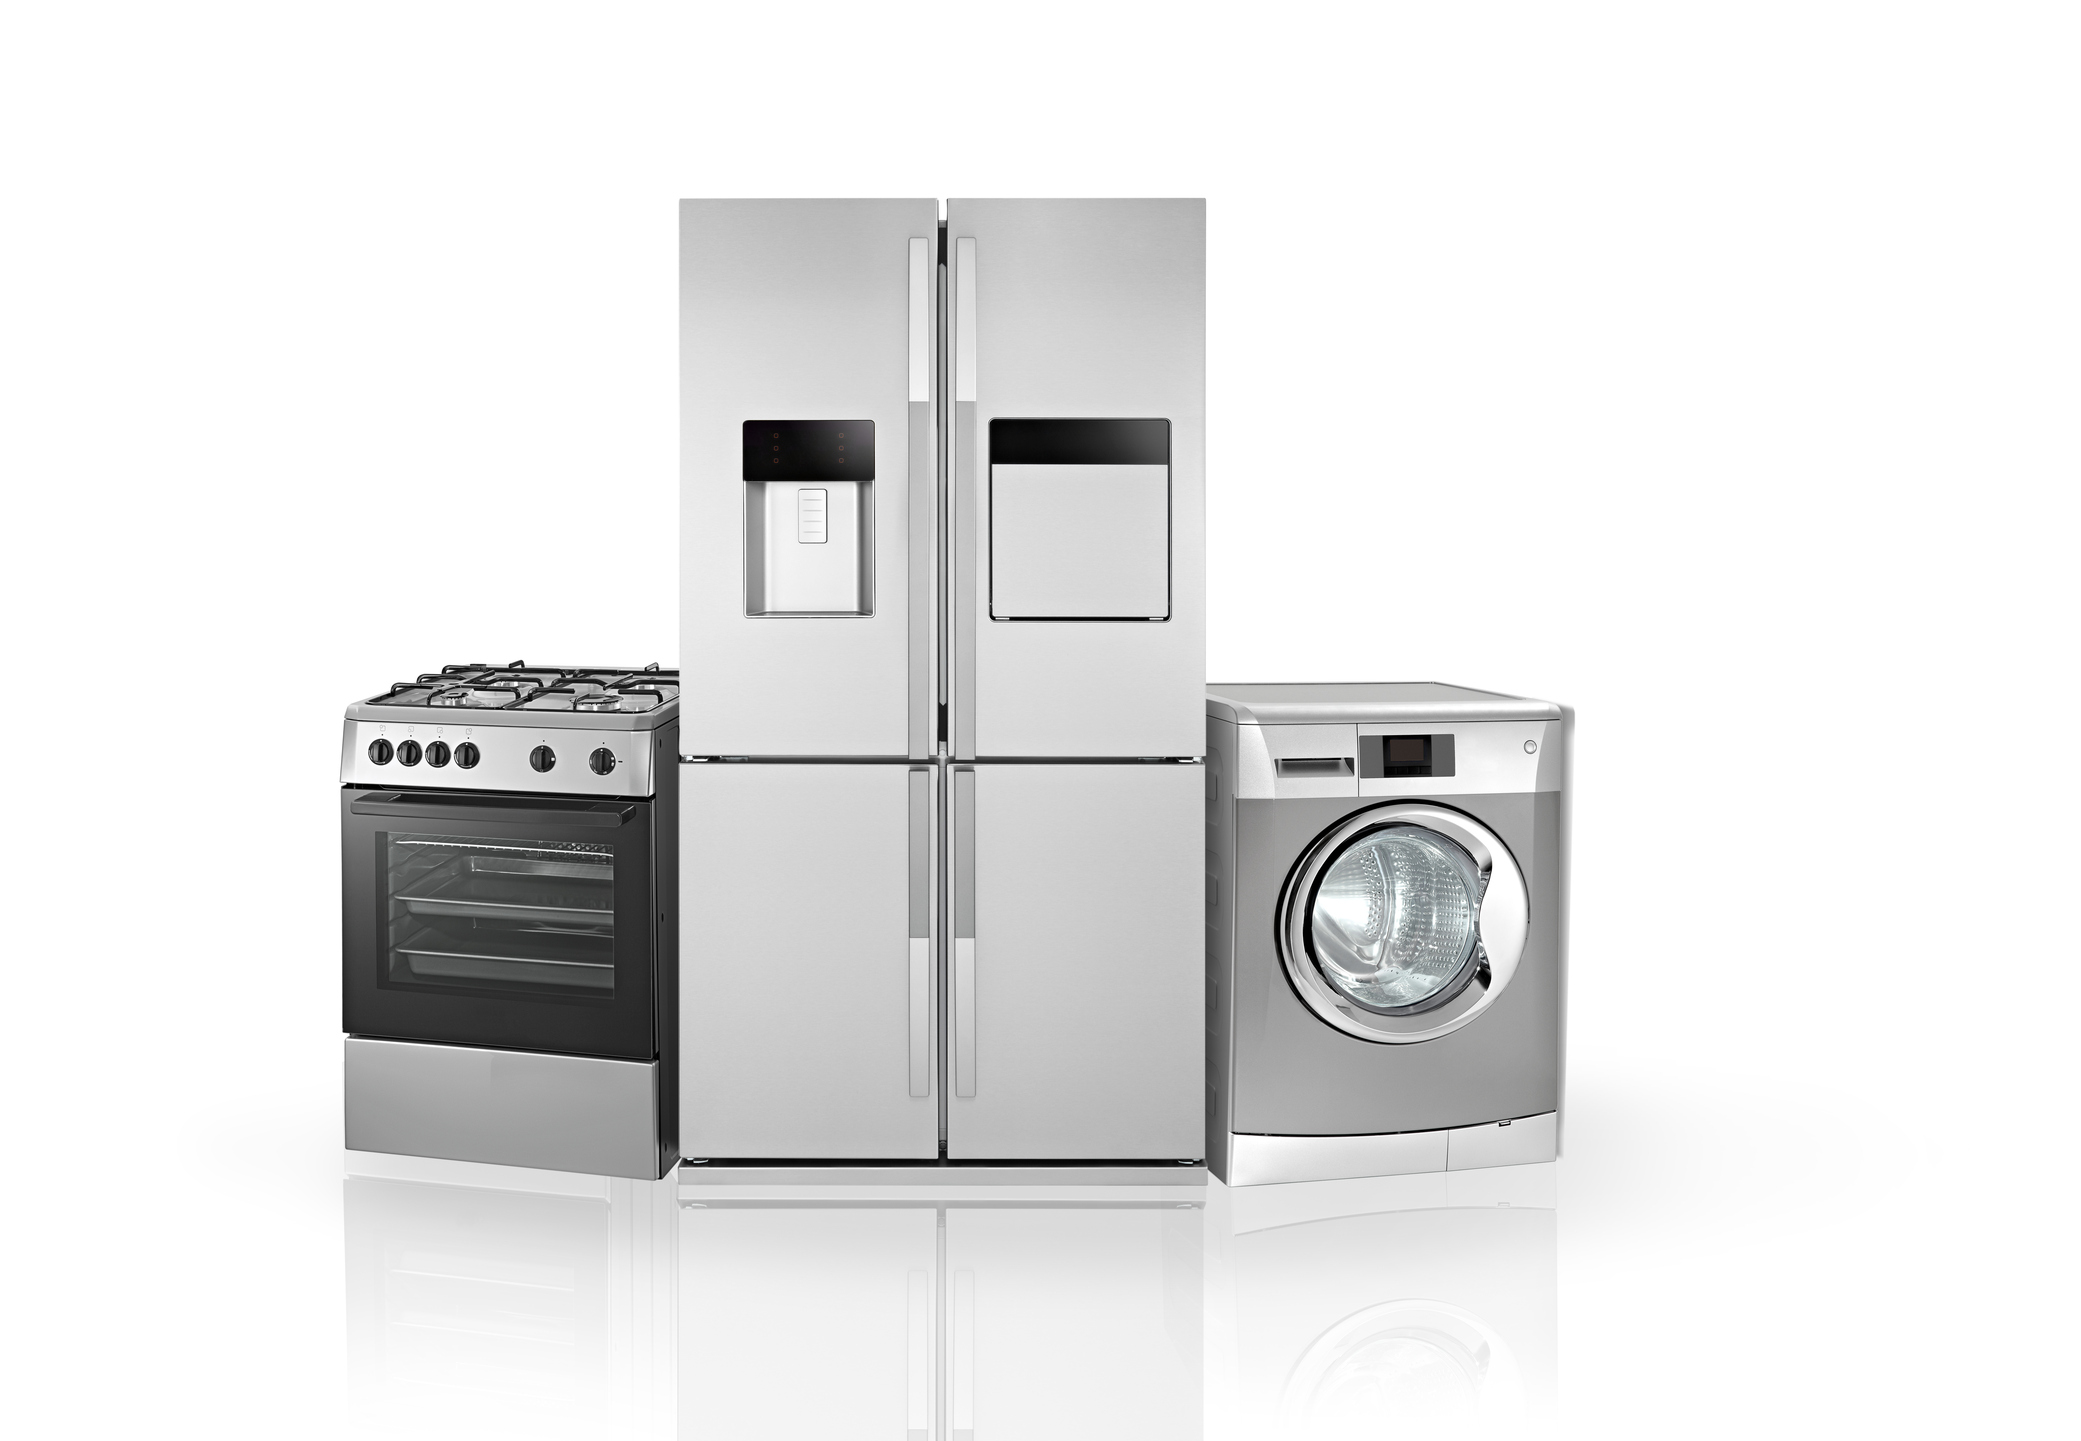 Image of appliances